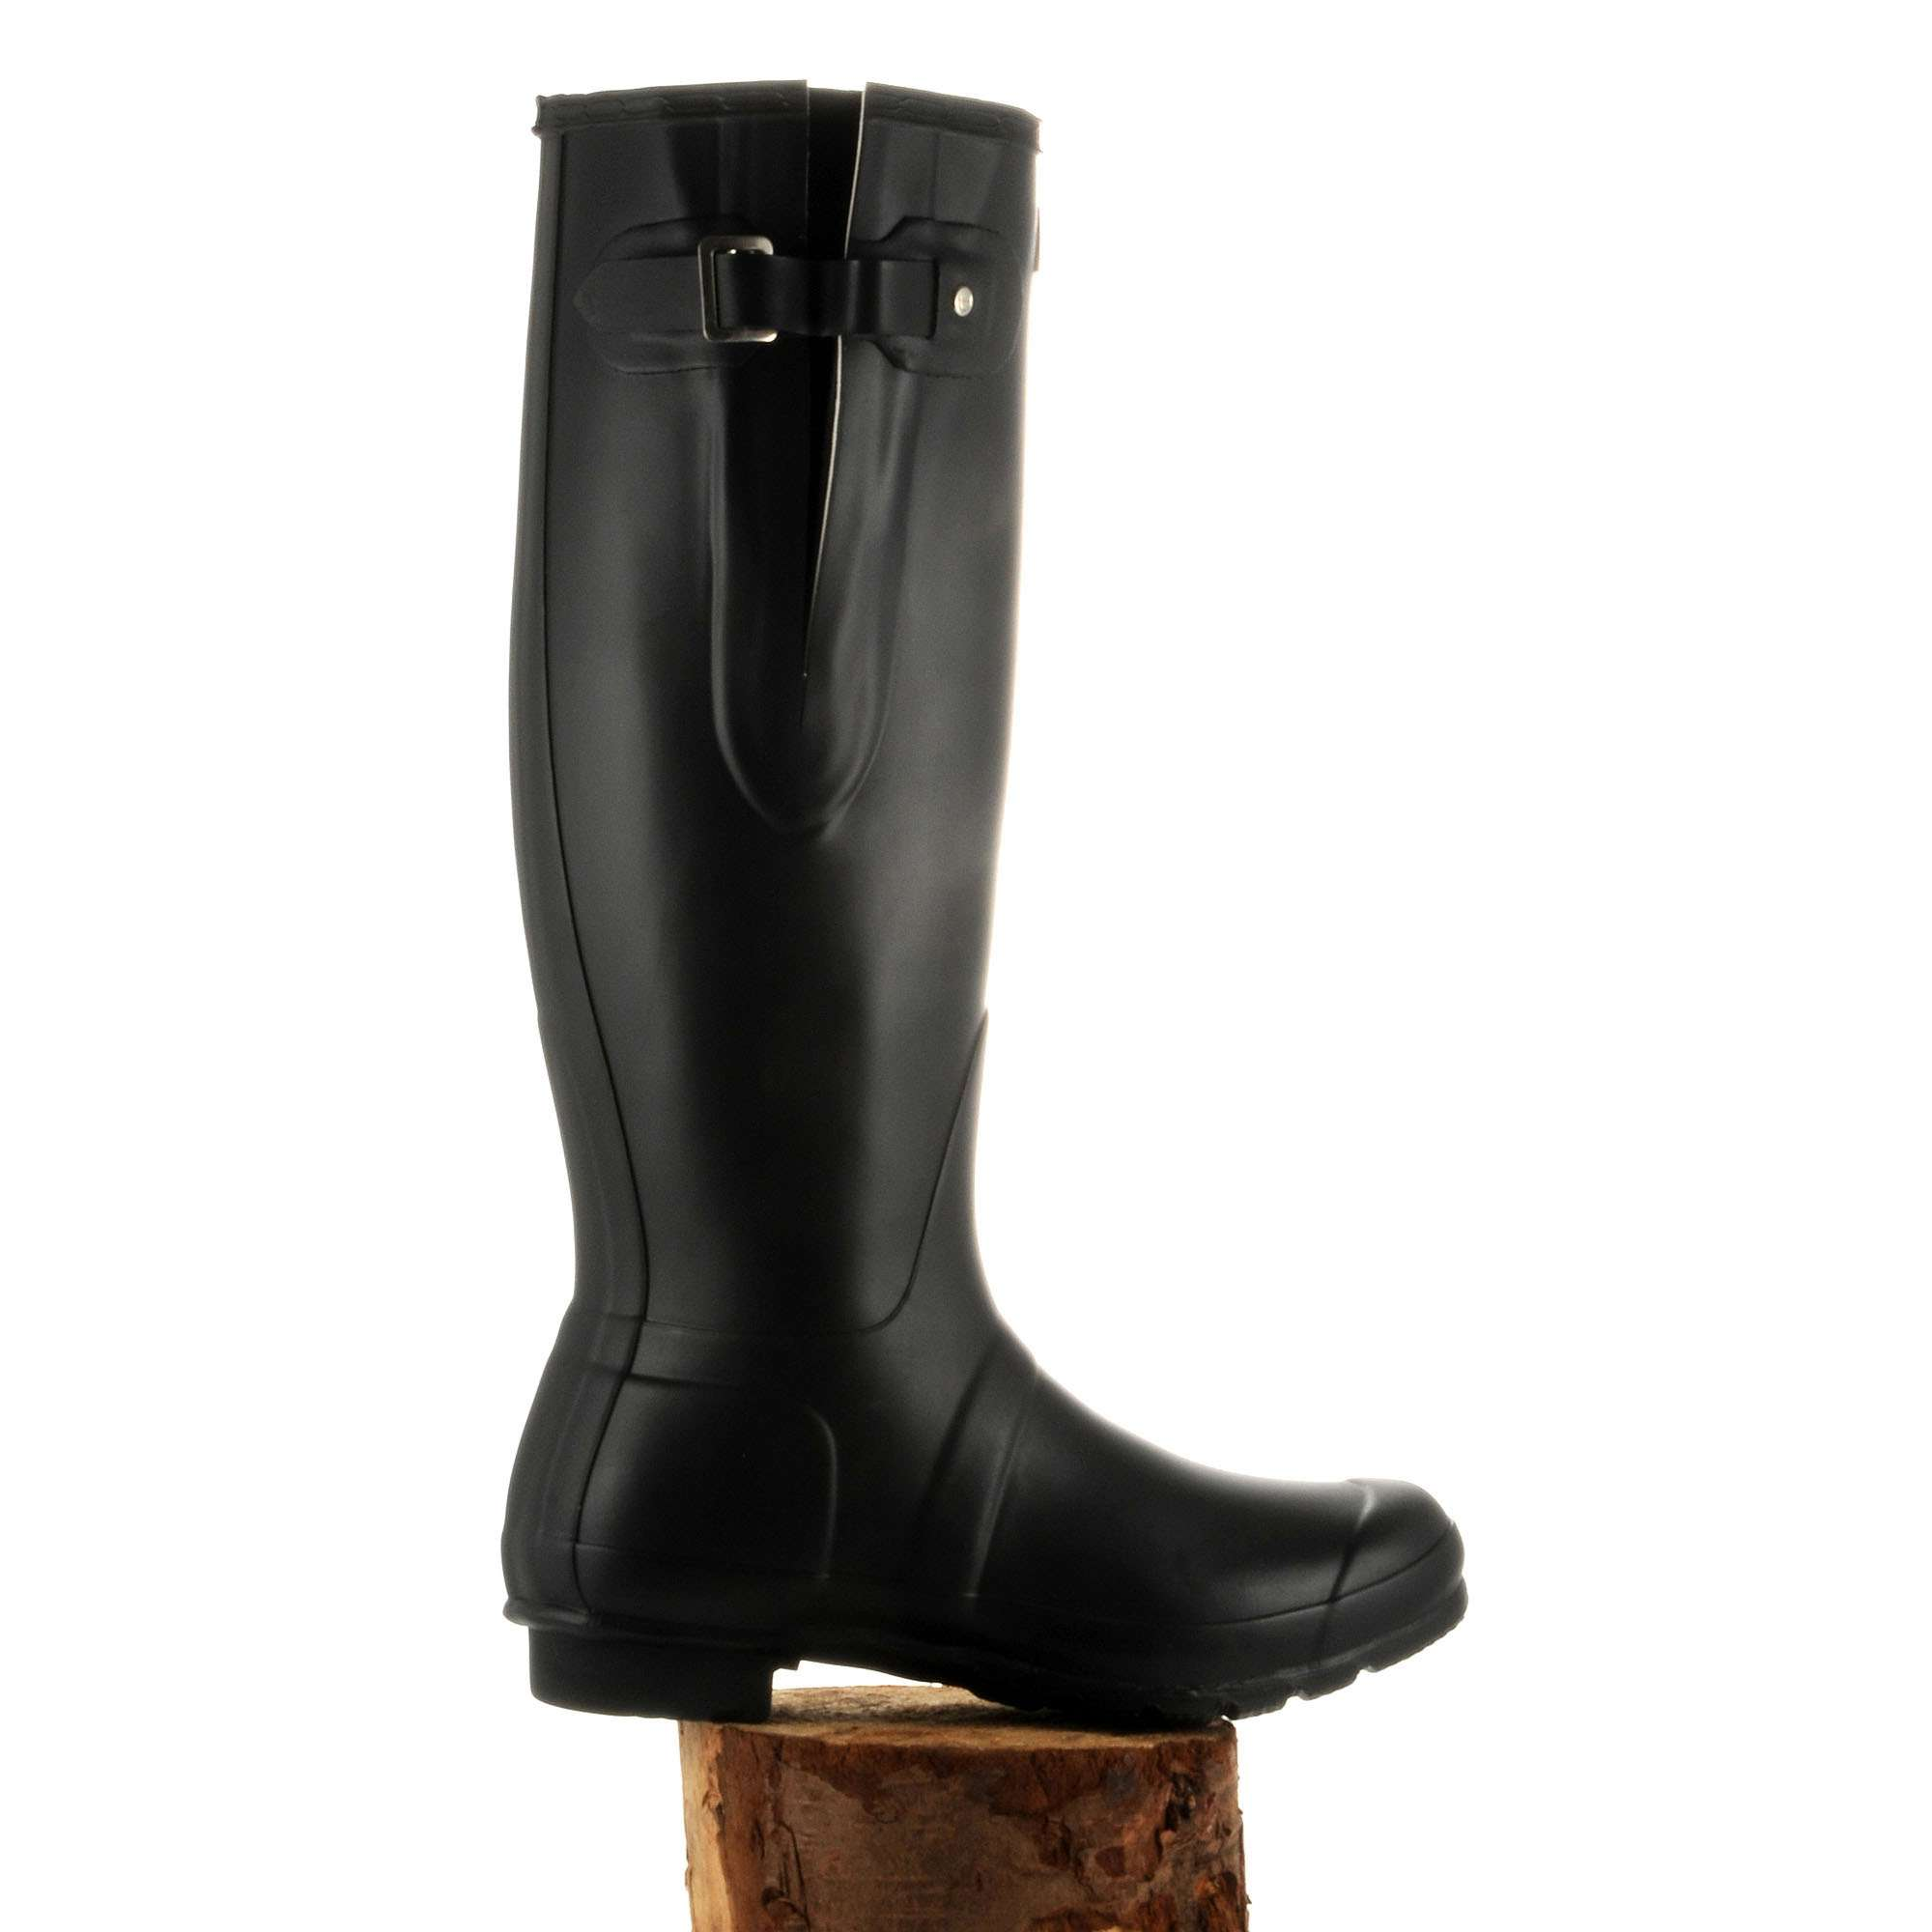 HUNTER Unisex Original Adjustable Wellies